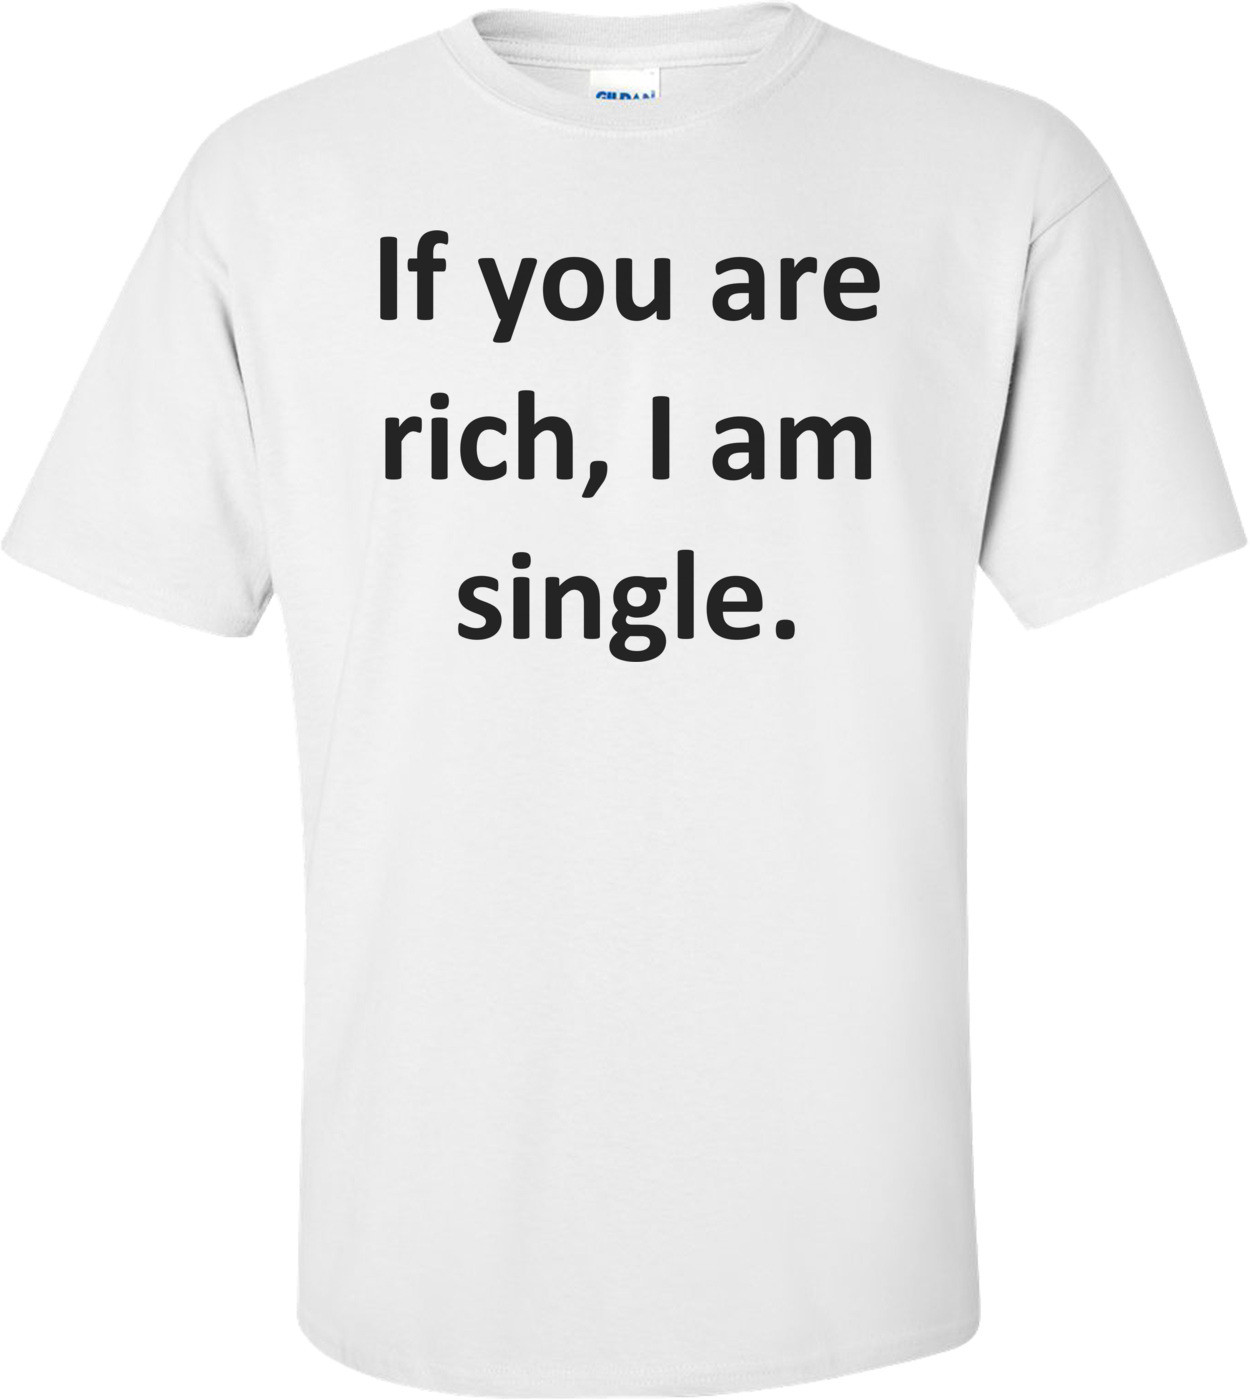 If you are rich, I am single. Shirt